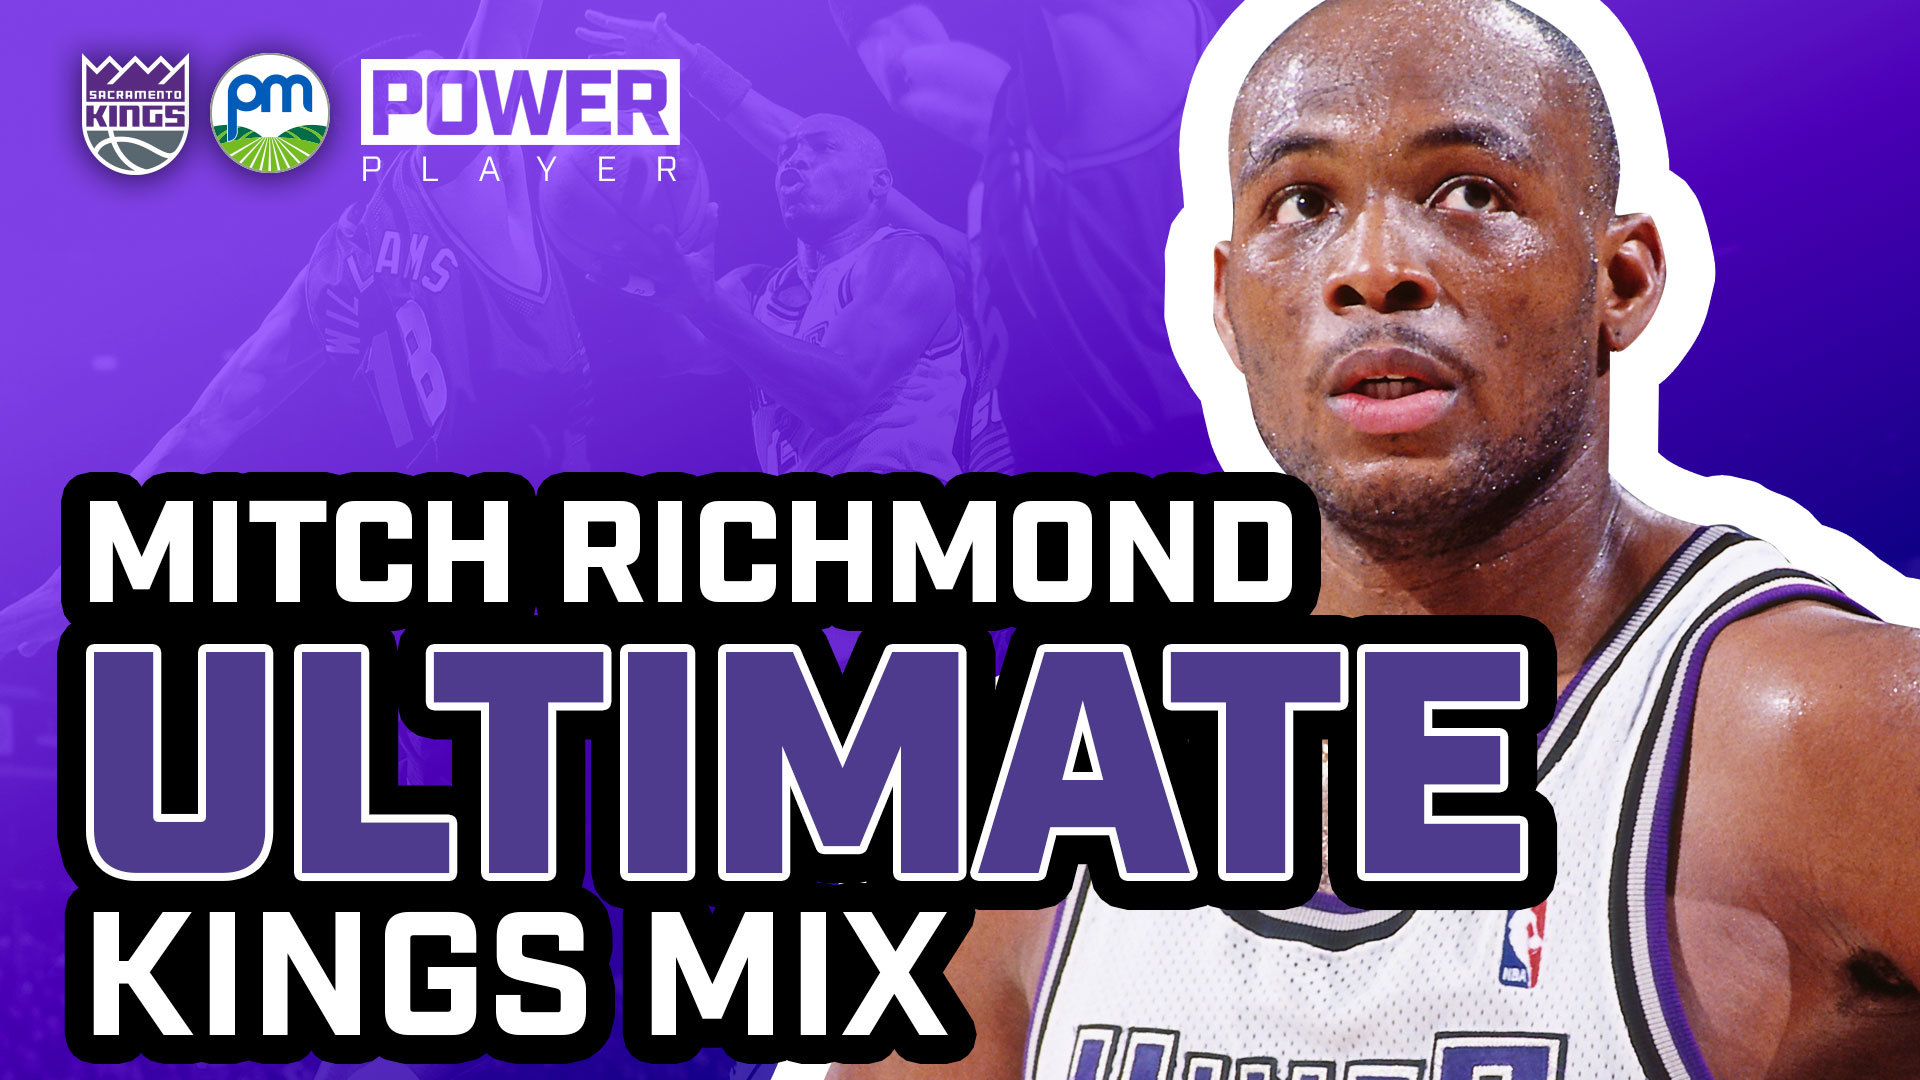 MITCH RICHMOND ULTIMATE KINGS MIX | Power Market Power Player